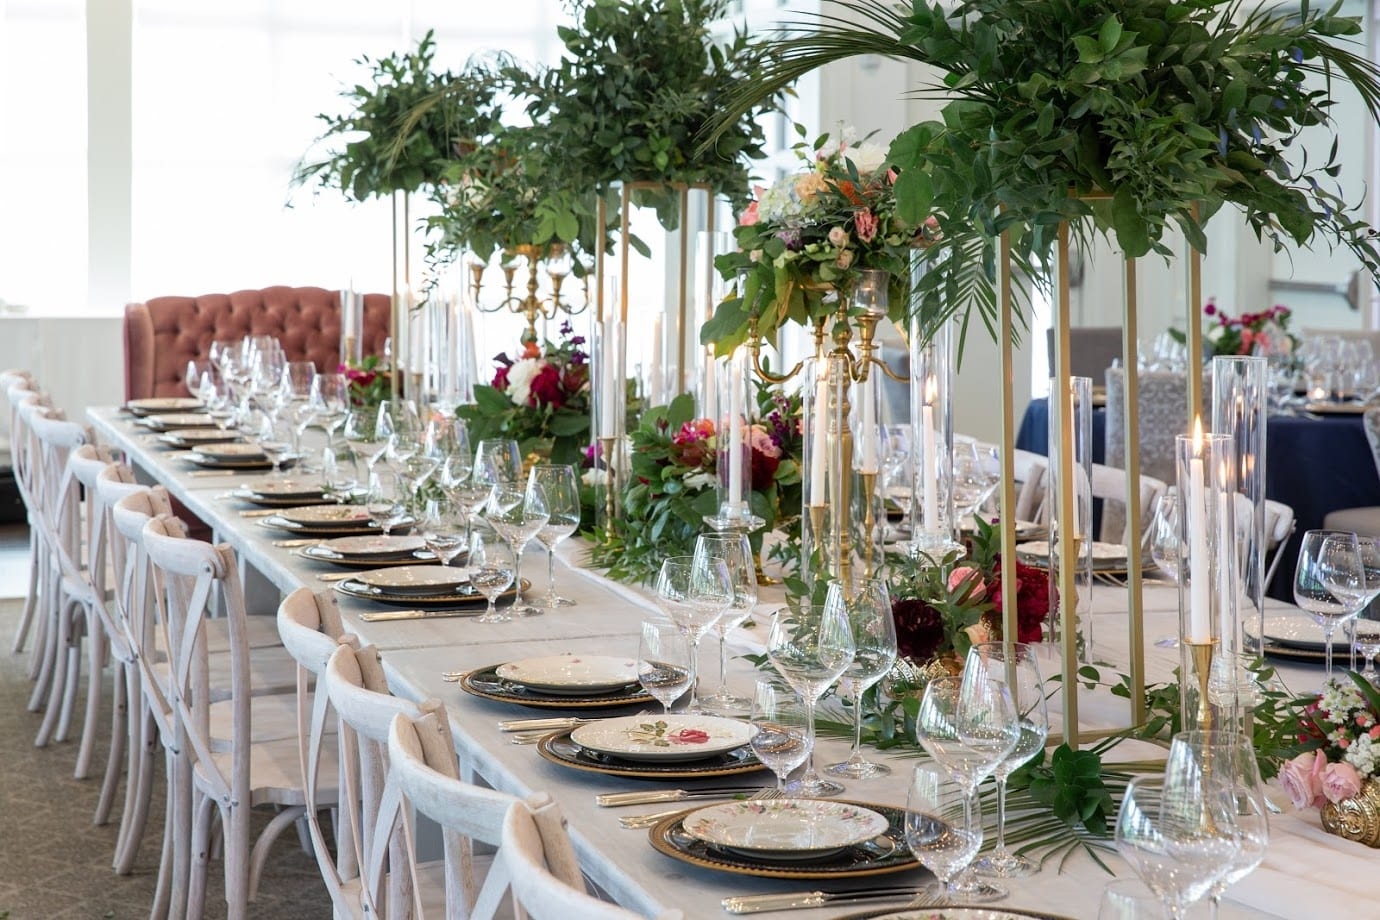 Fresh Look Design long wedding table with candles and greenery